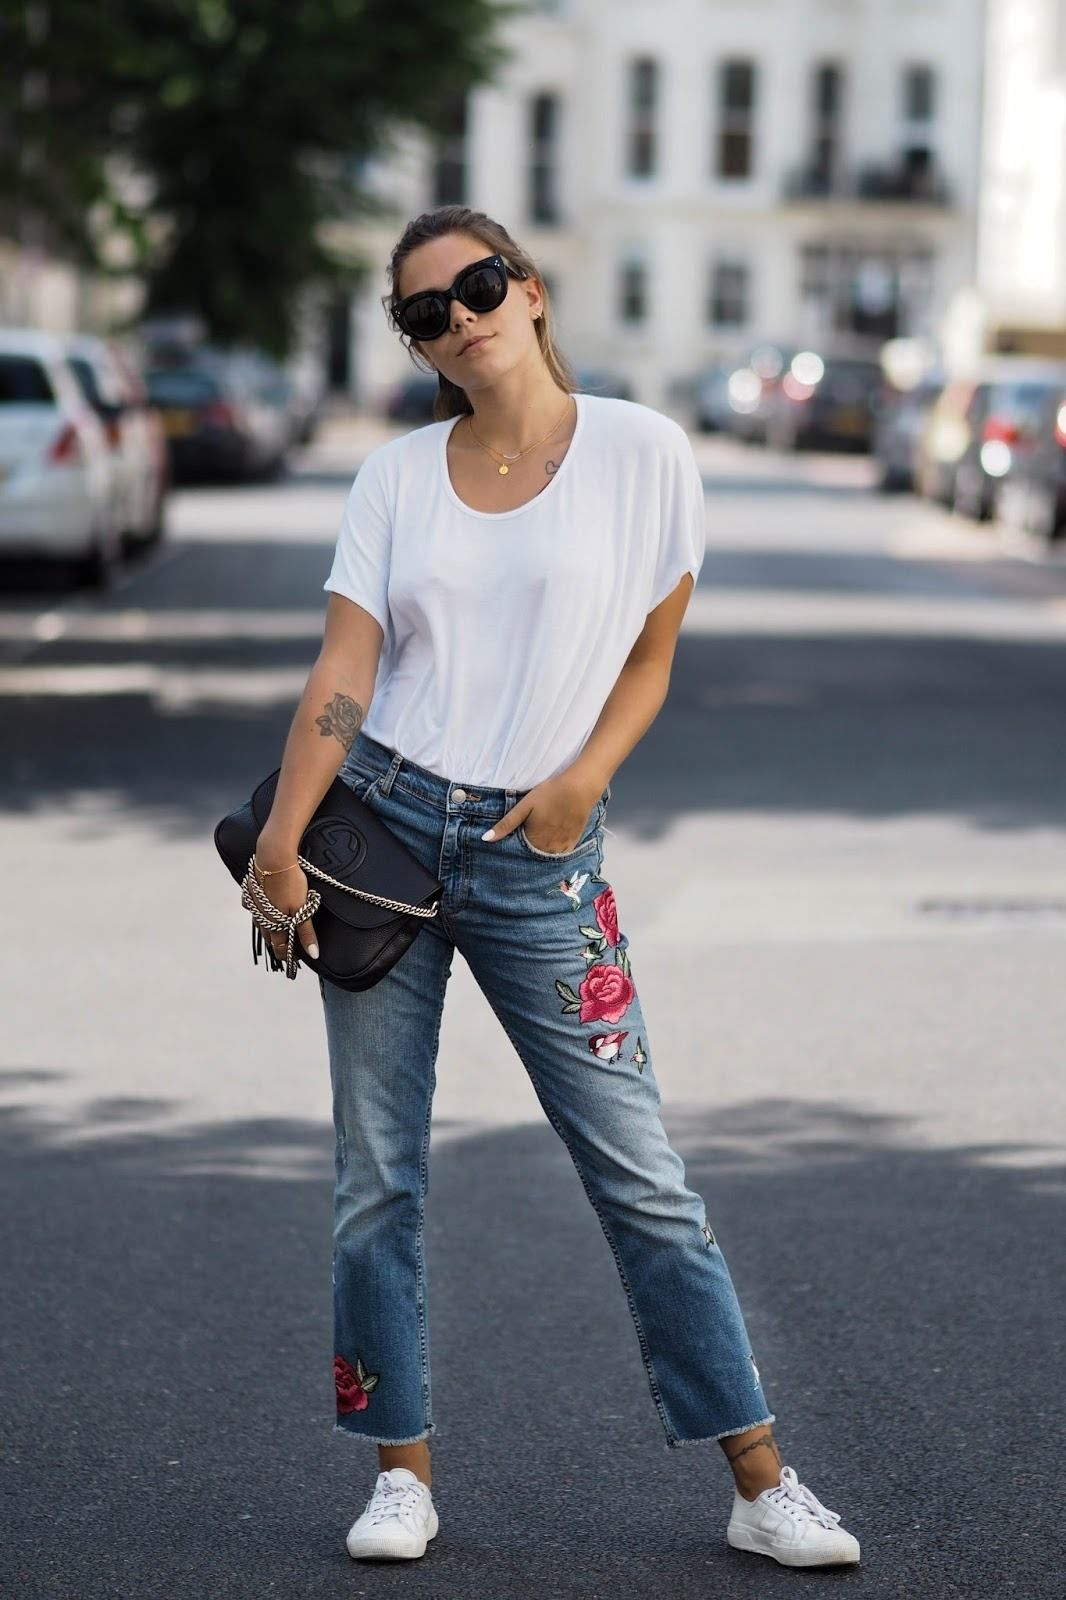 How to Wear Embroidered Jeans16 Embroidered Jeans Outfits pictures